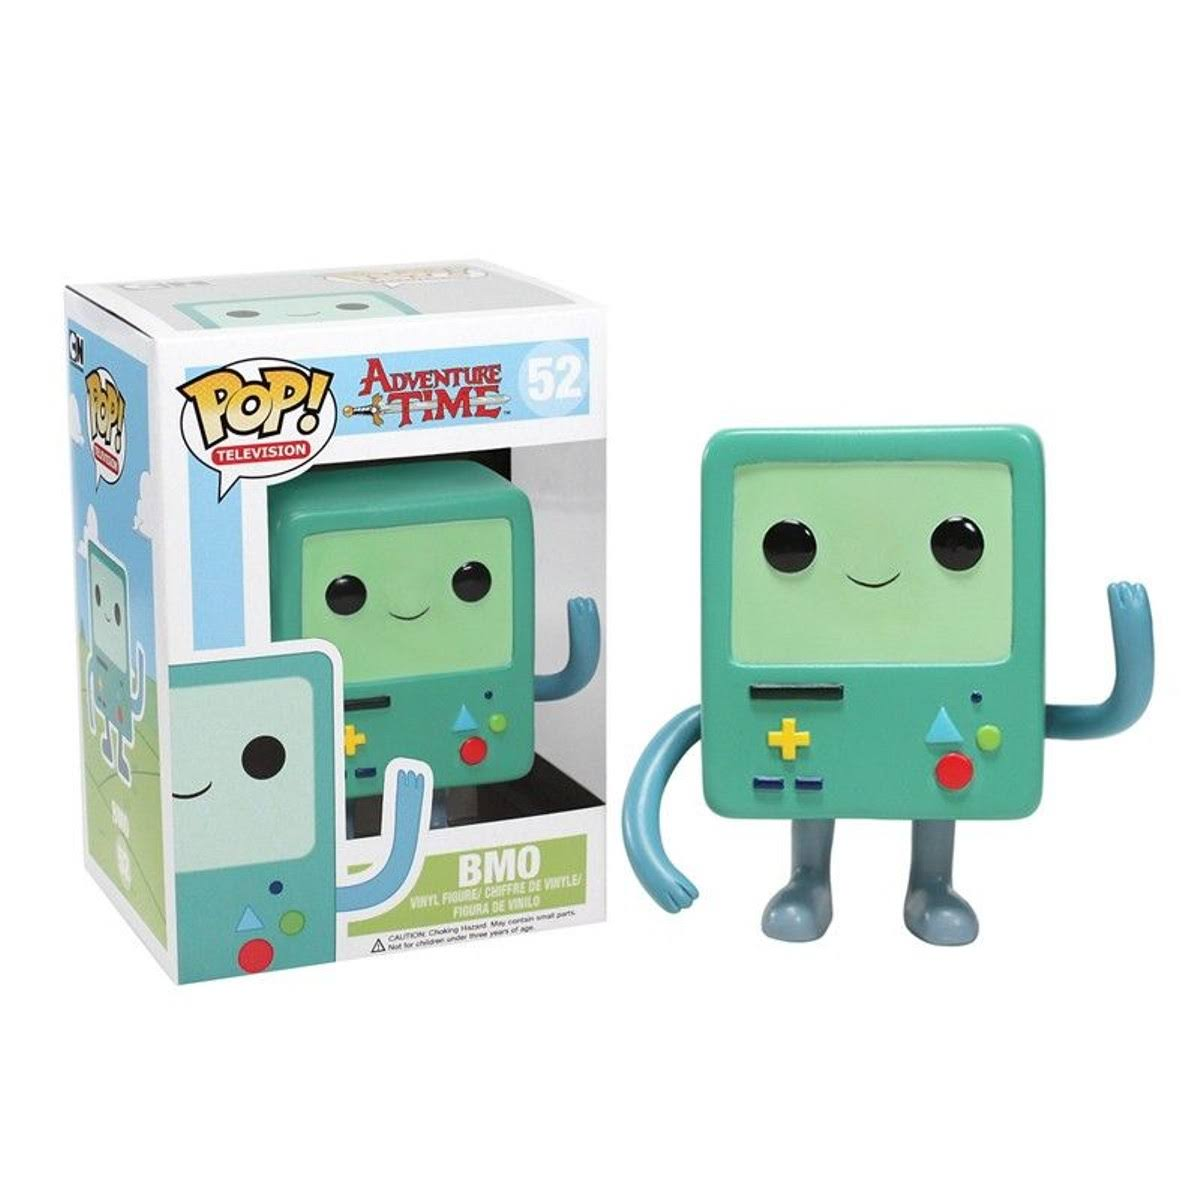 Funko POP Television Adventure Time Vinyl Figure - BMO